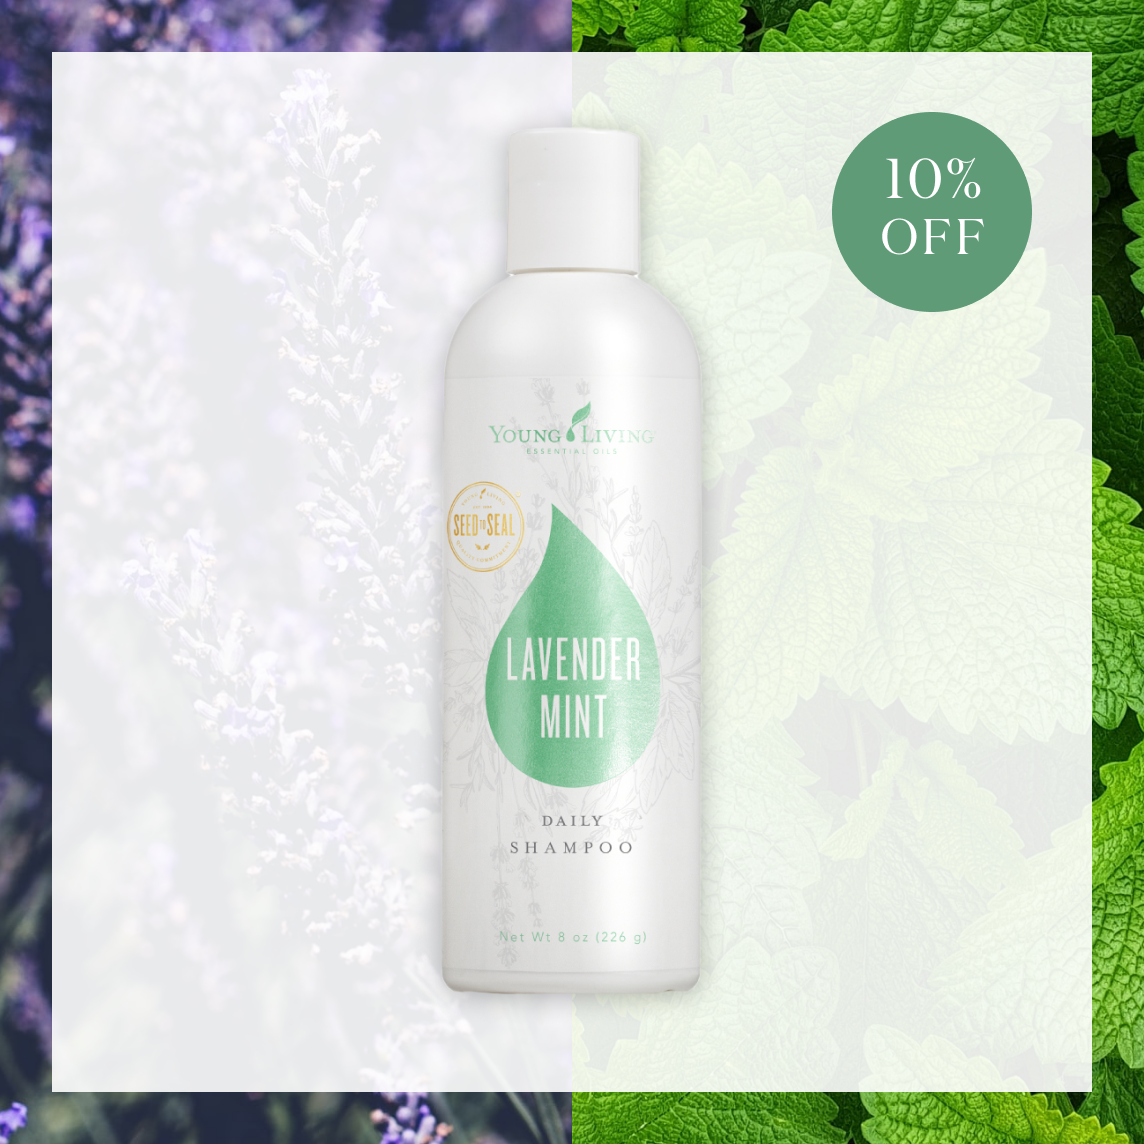 Discounted Lavender Mint Shampoo